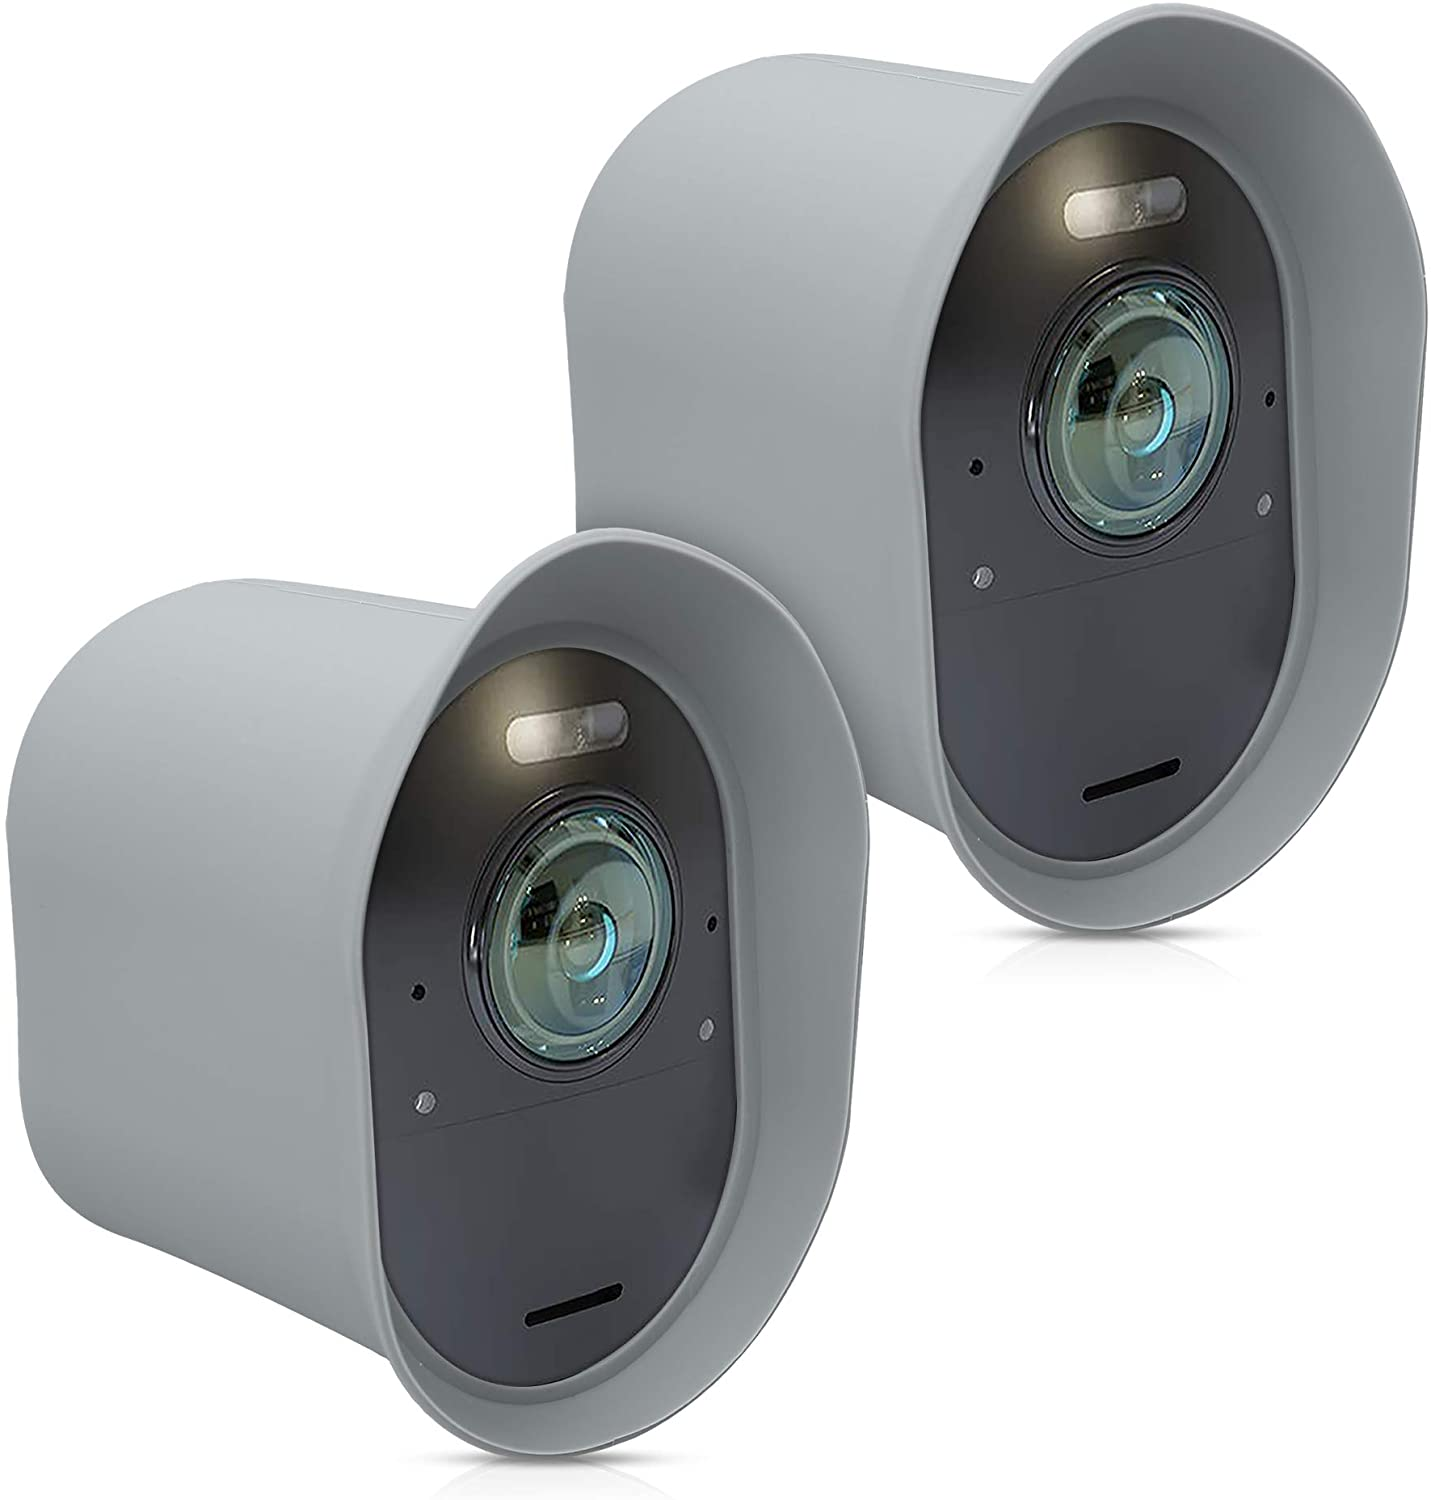 kwmobile 2X Skin Compatible with Arlo Ultra/Arlo Pro 3 - Silicone Security Camera Case Outdoor CCTV Cover - Light Grey